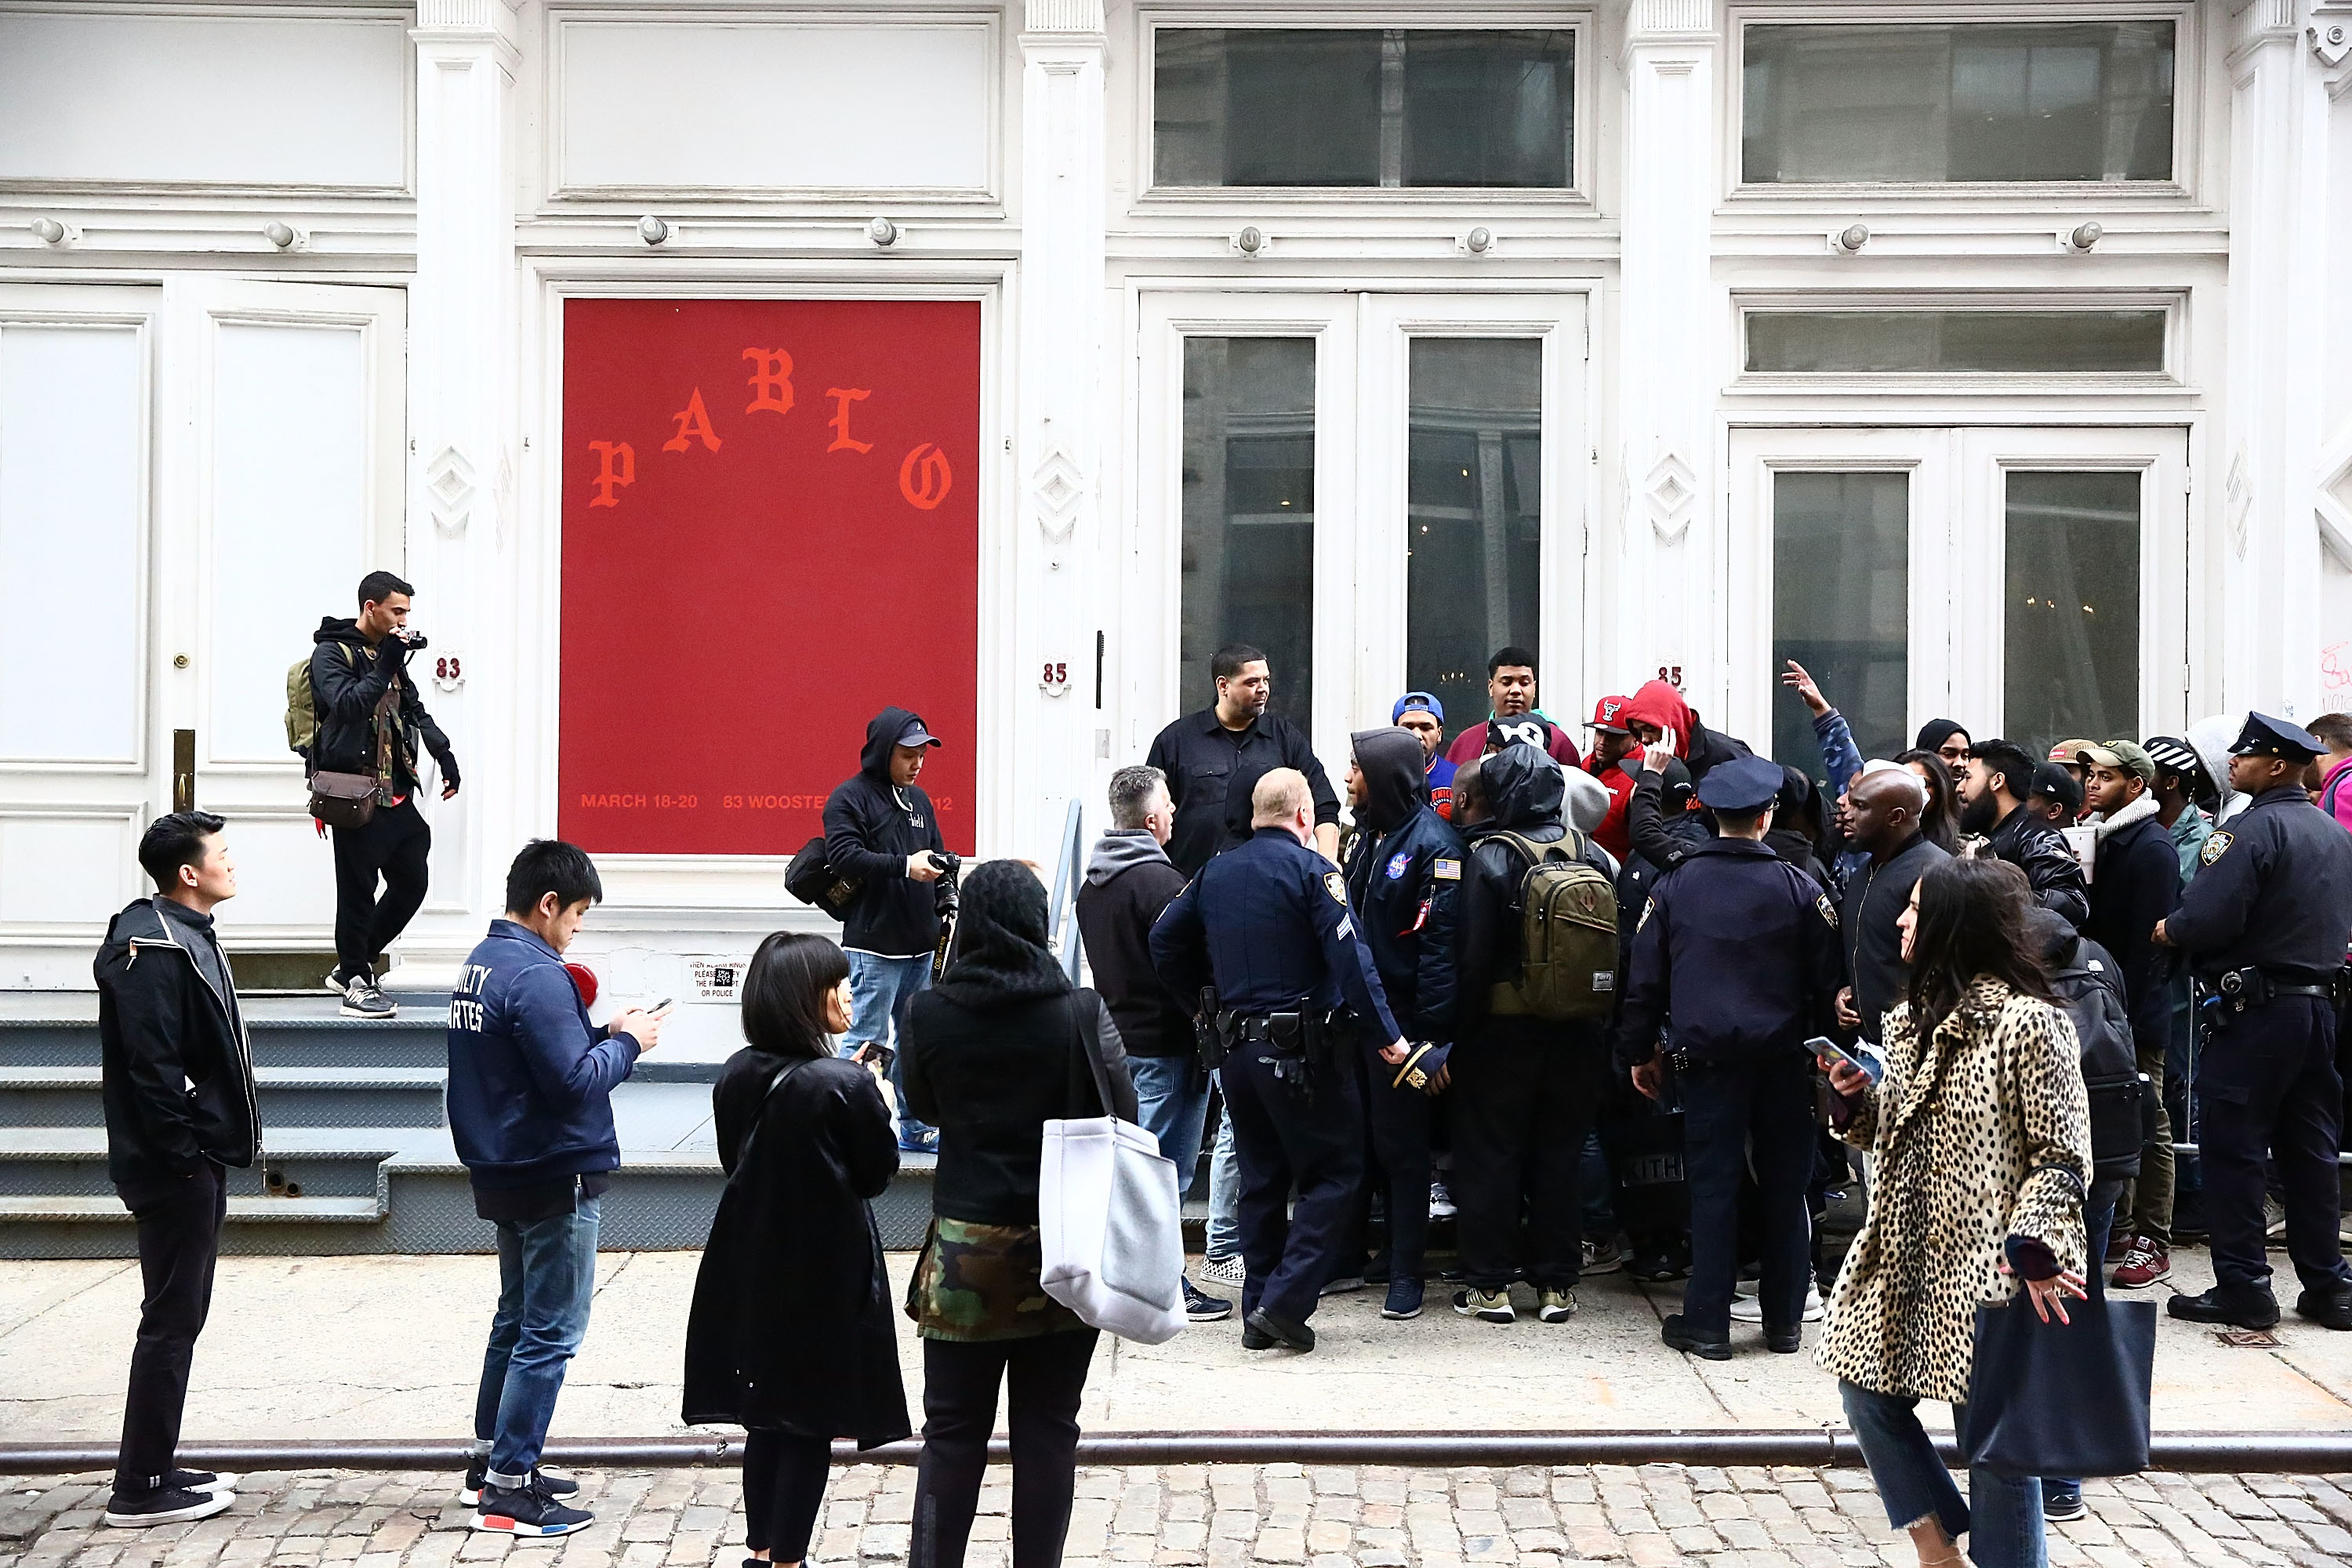 """NEW YORK, NY - MARCH 18:  NYPD guard the area near 83 Wooster Street in Soho at the Kanye West """"Pablo Pop-Up Shop"""" In Manhattan on March 18, 2016 in New York City.  (Photo by Astrid Stawiarz/Getty Images)"""